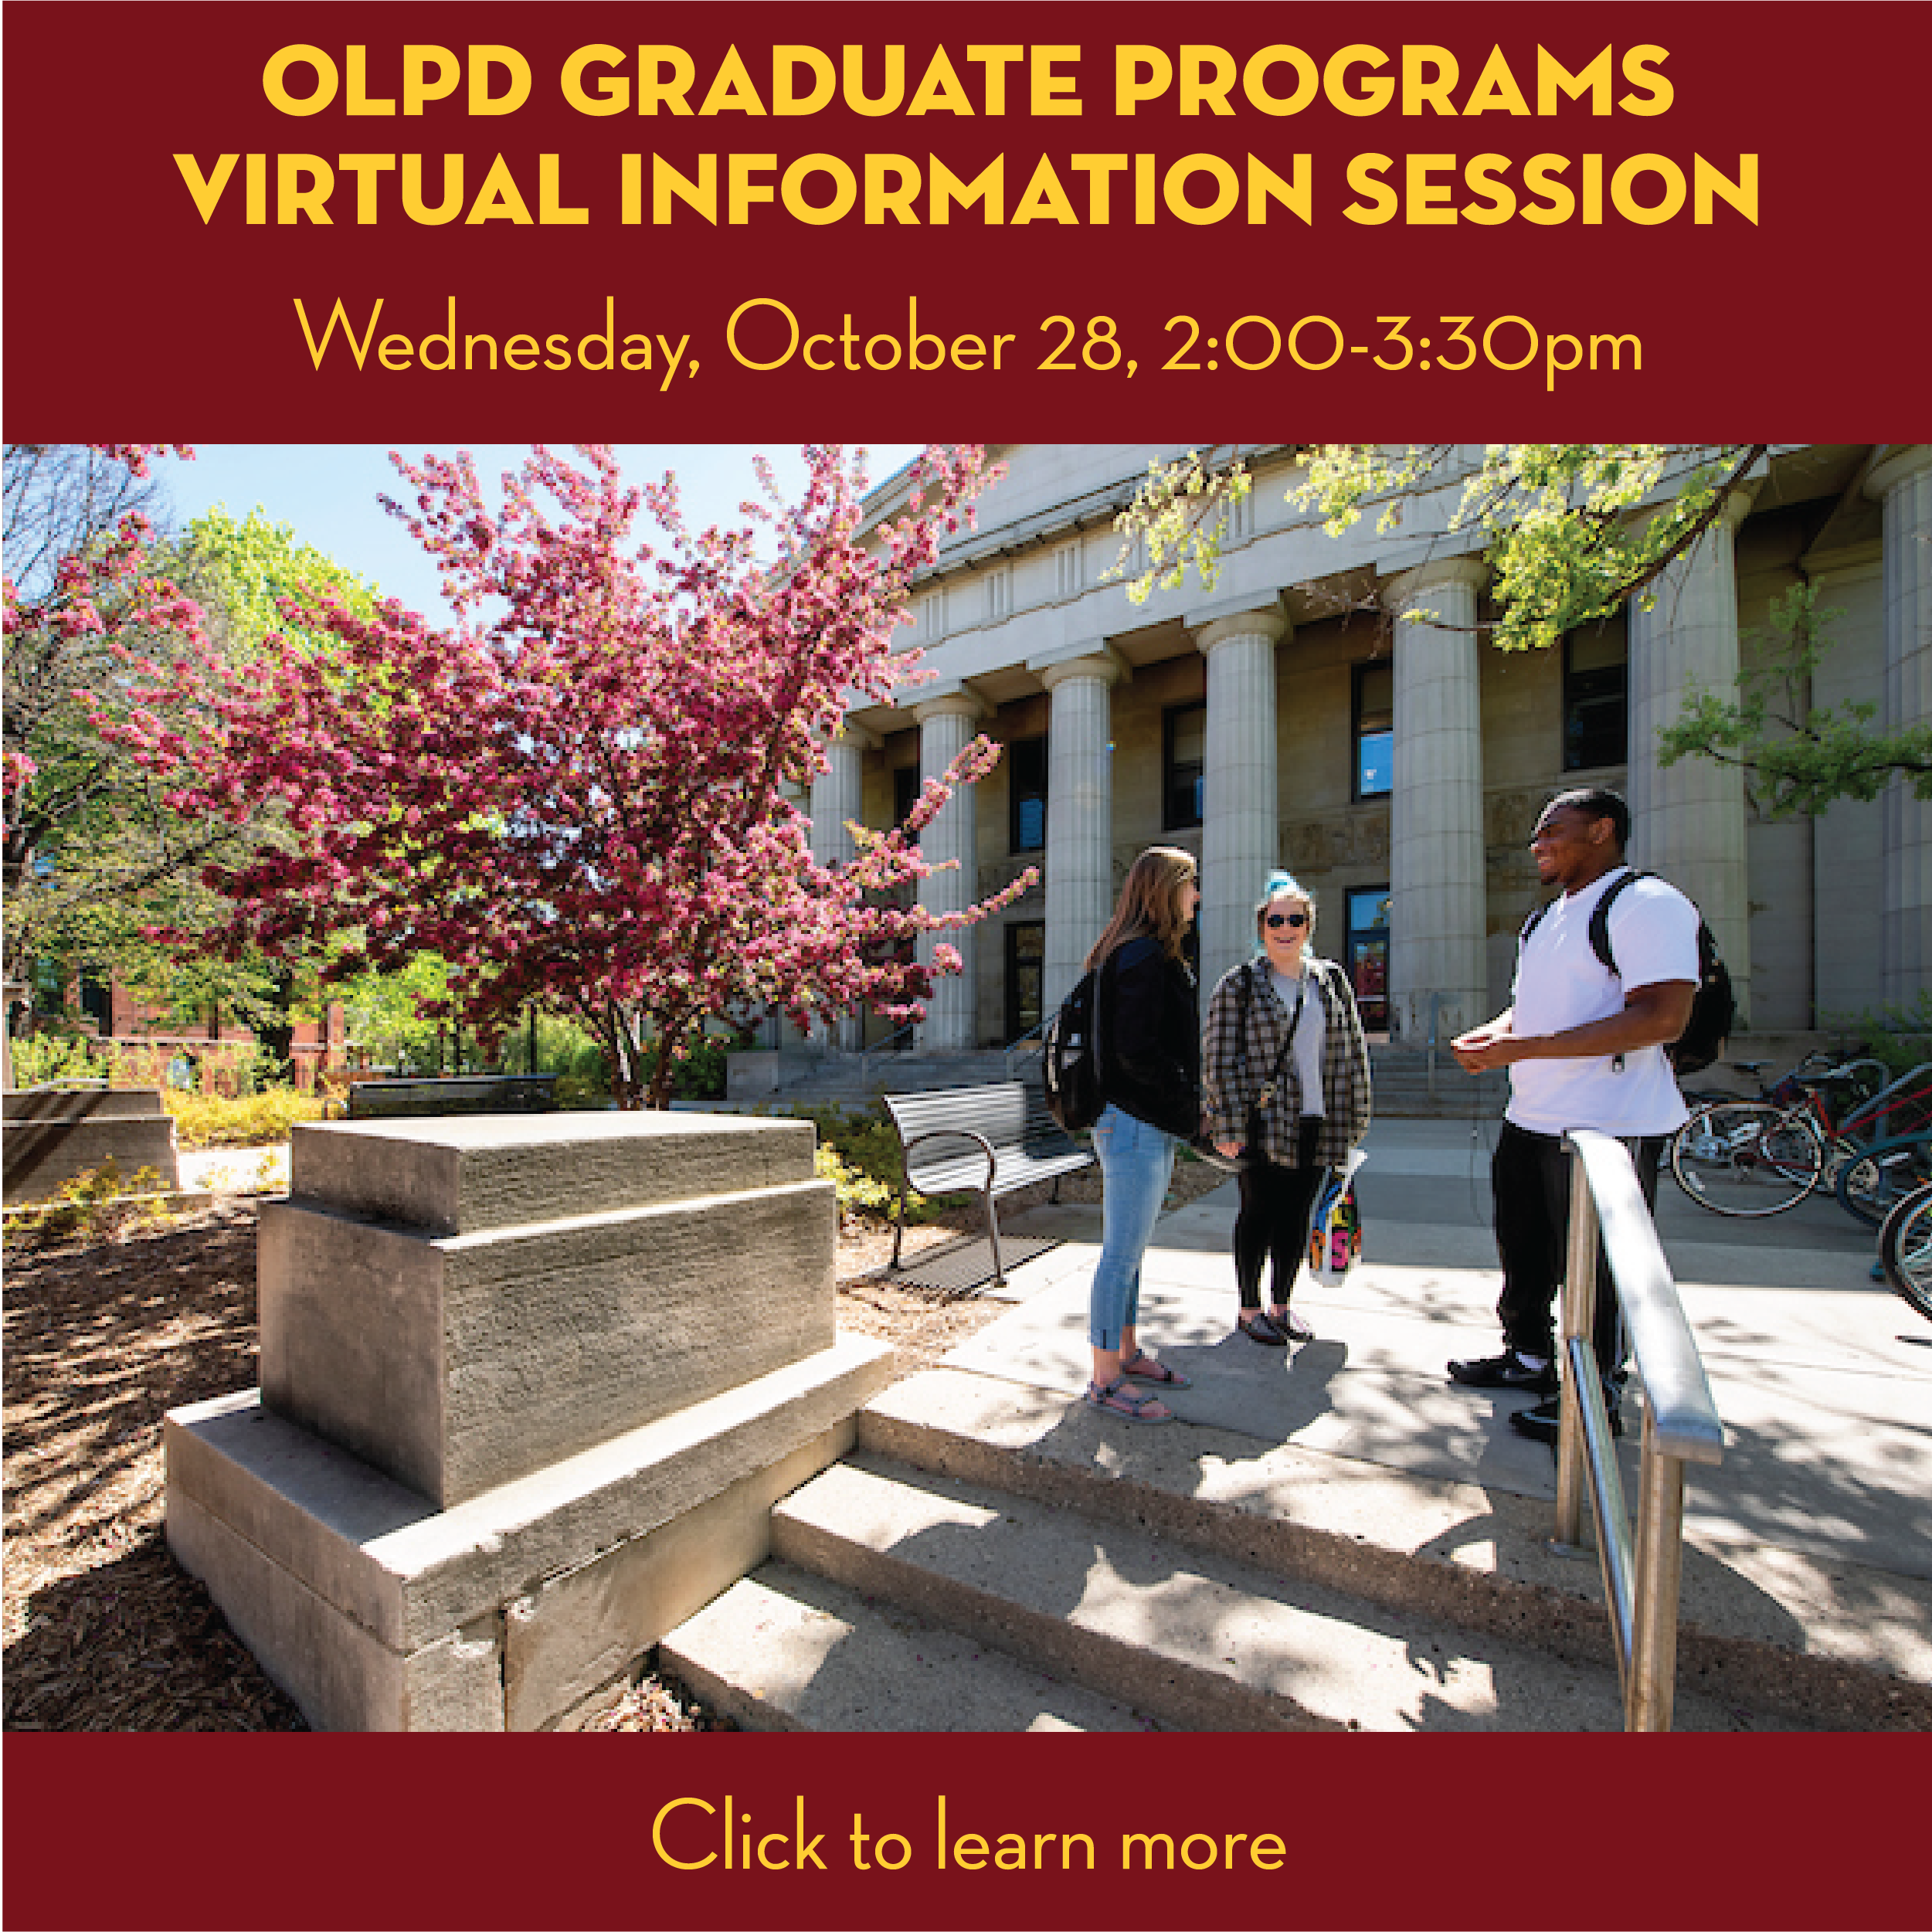 Join us for a virtual info session on OLPD graduate programs October 28, 2:00 to 3:30pm, via Zoom at z.umn.edu/OLPDinfo